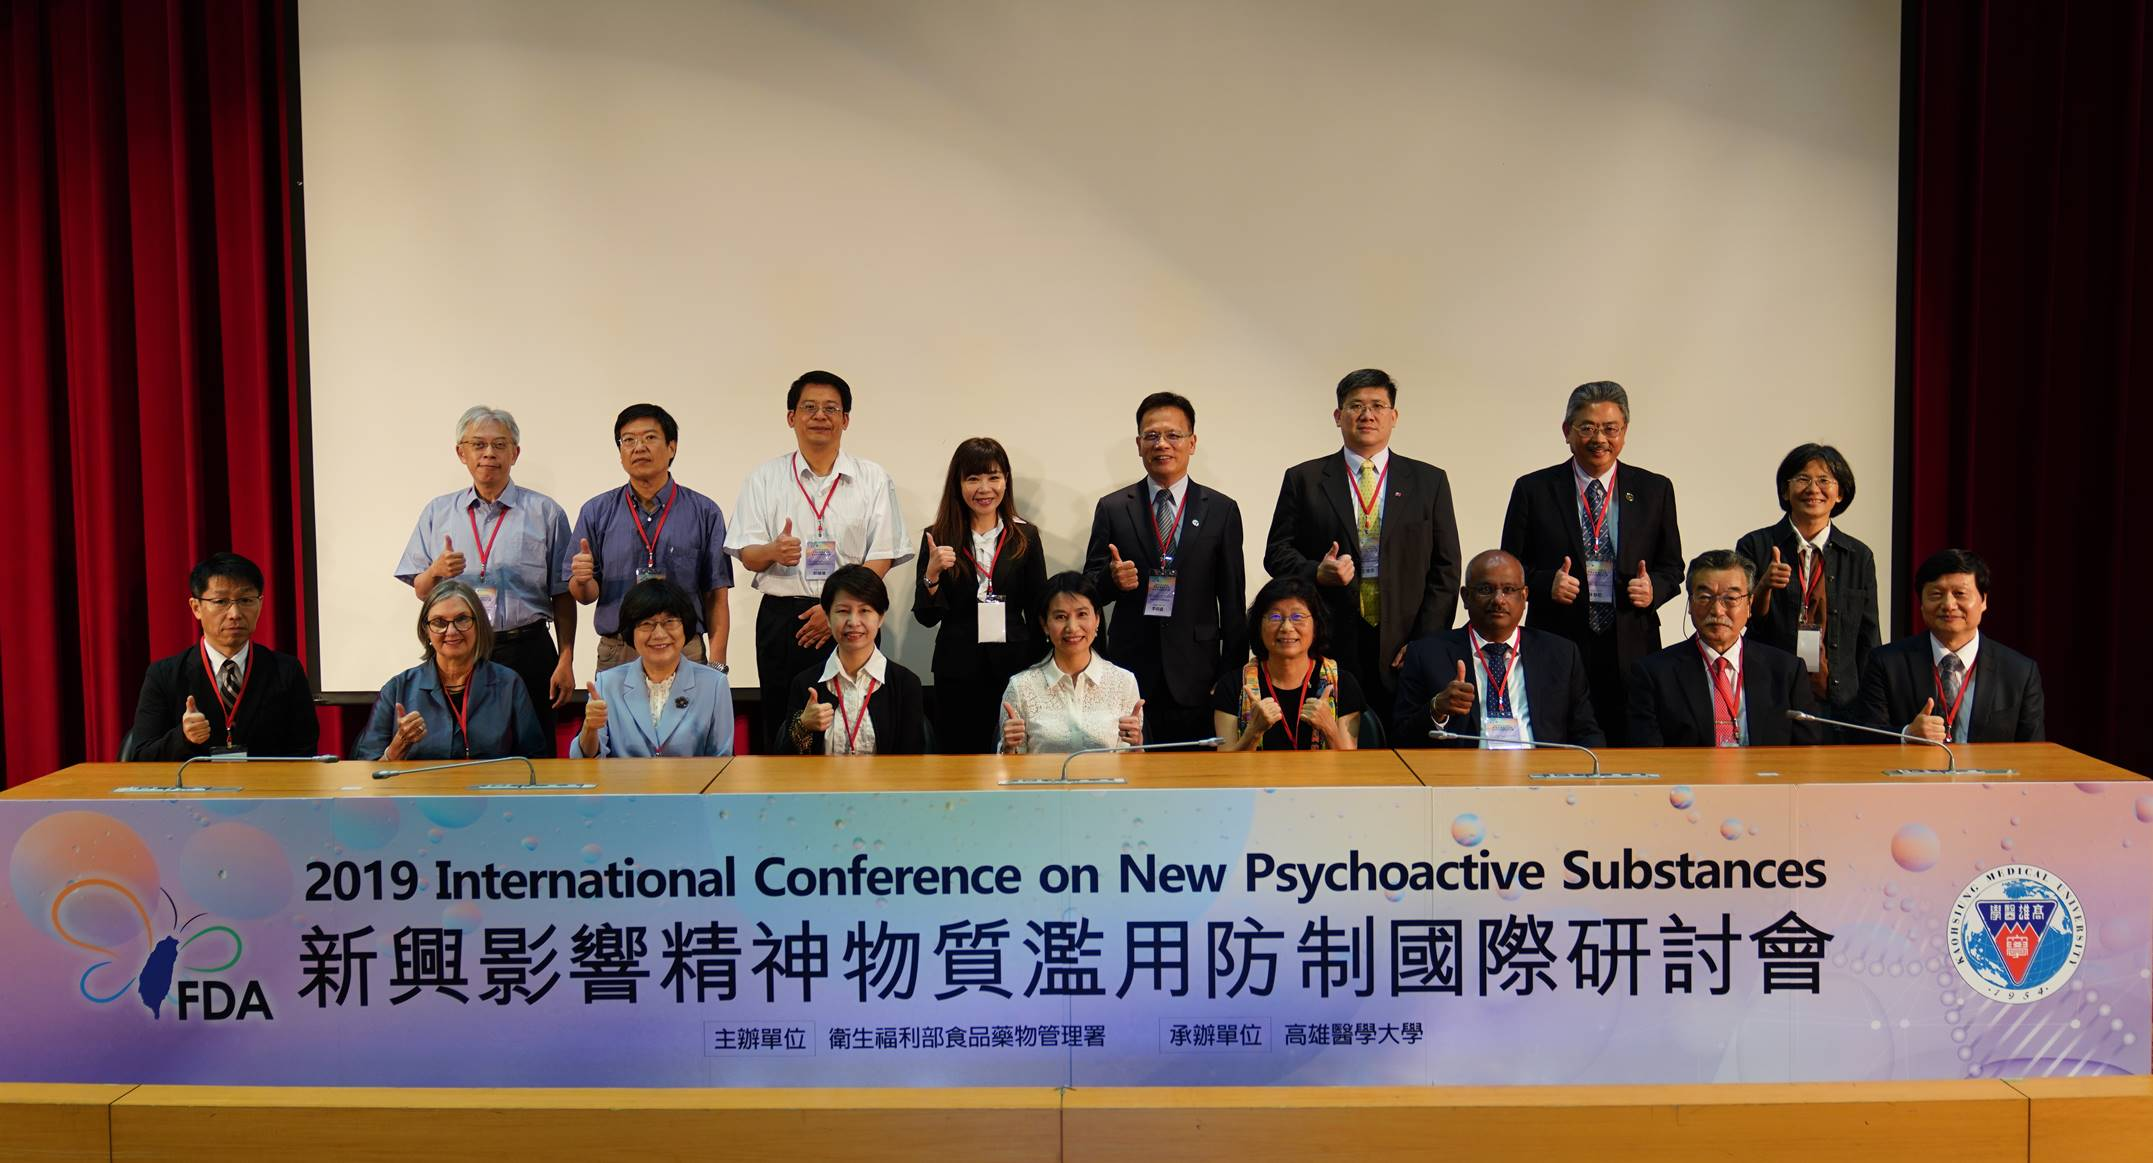 2019 International Conference on New Psychoactive Substances